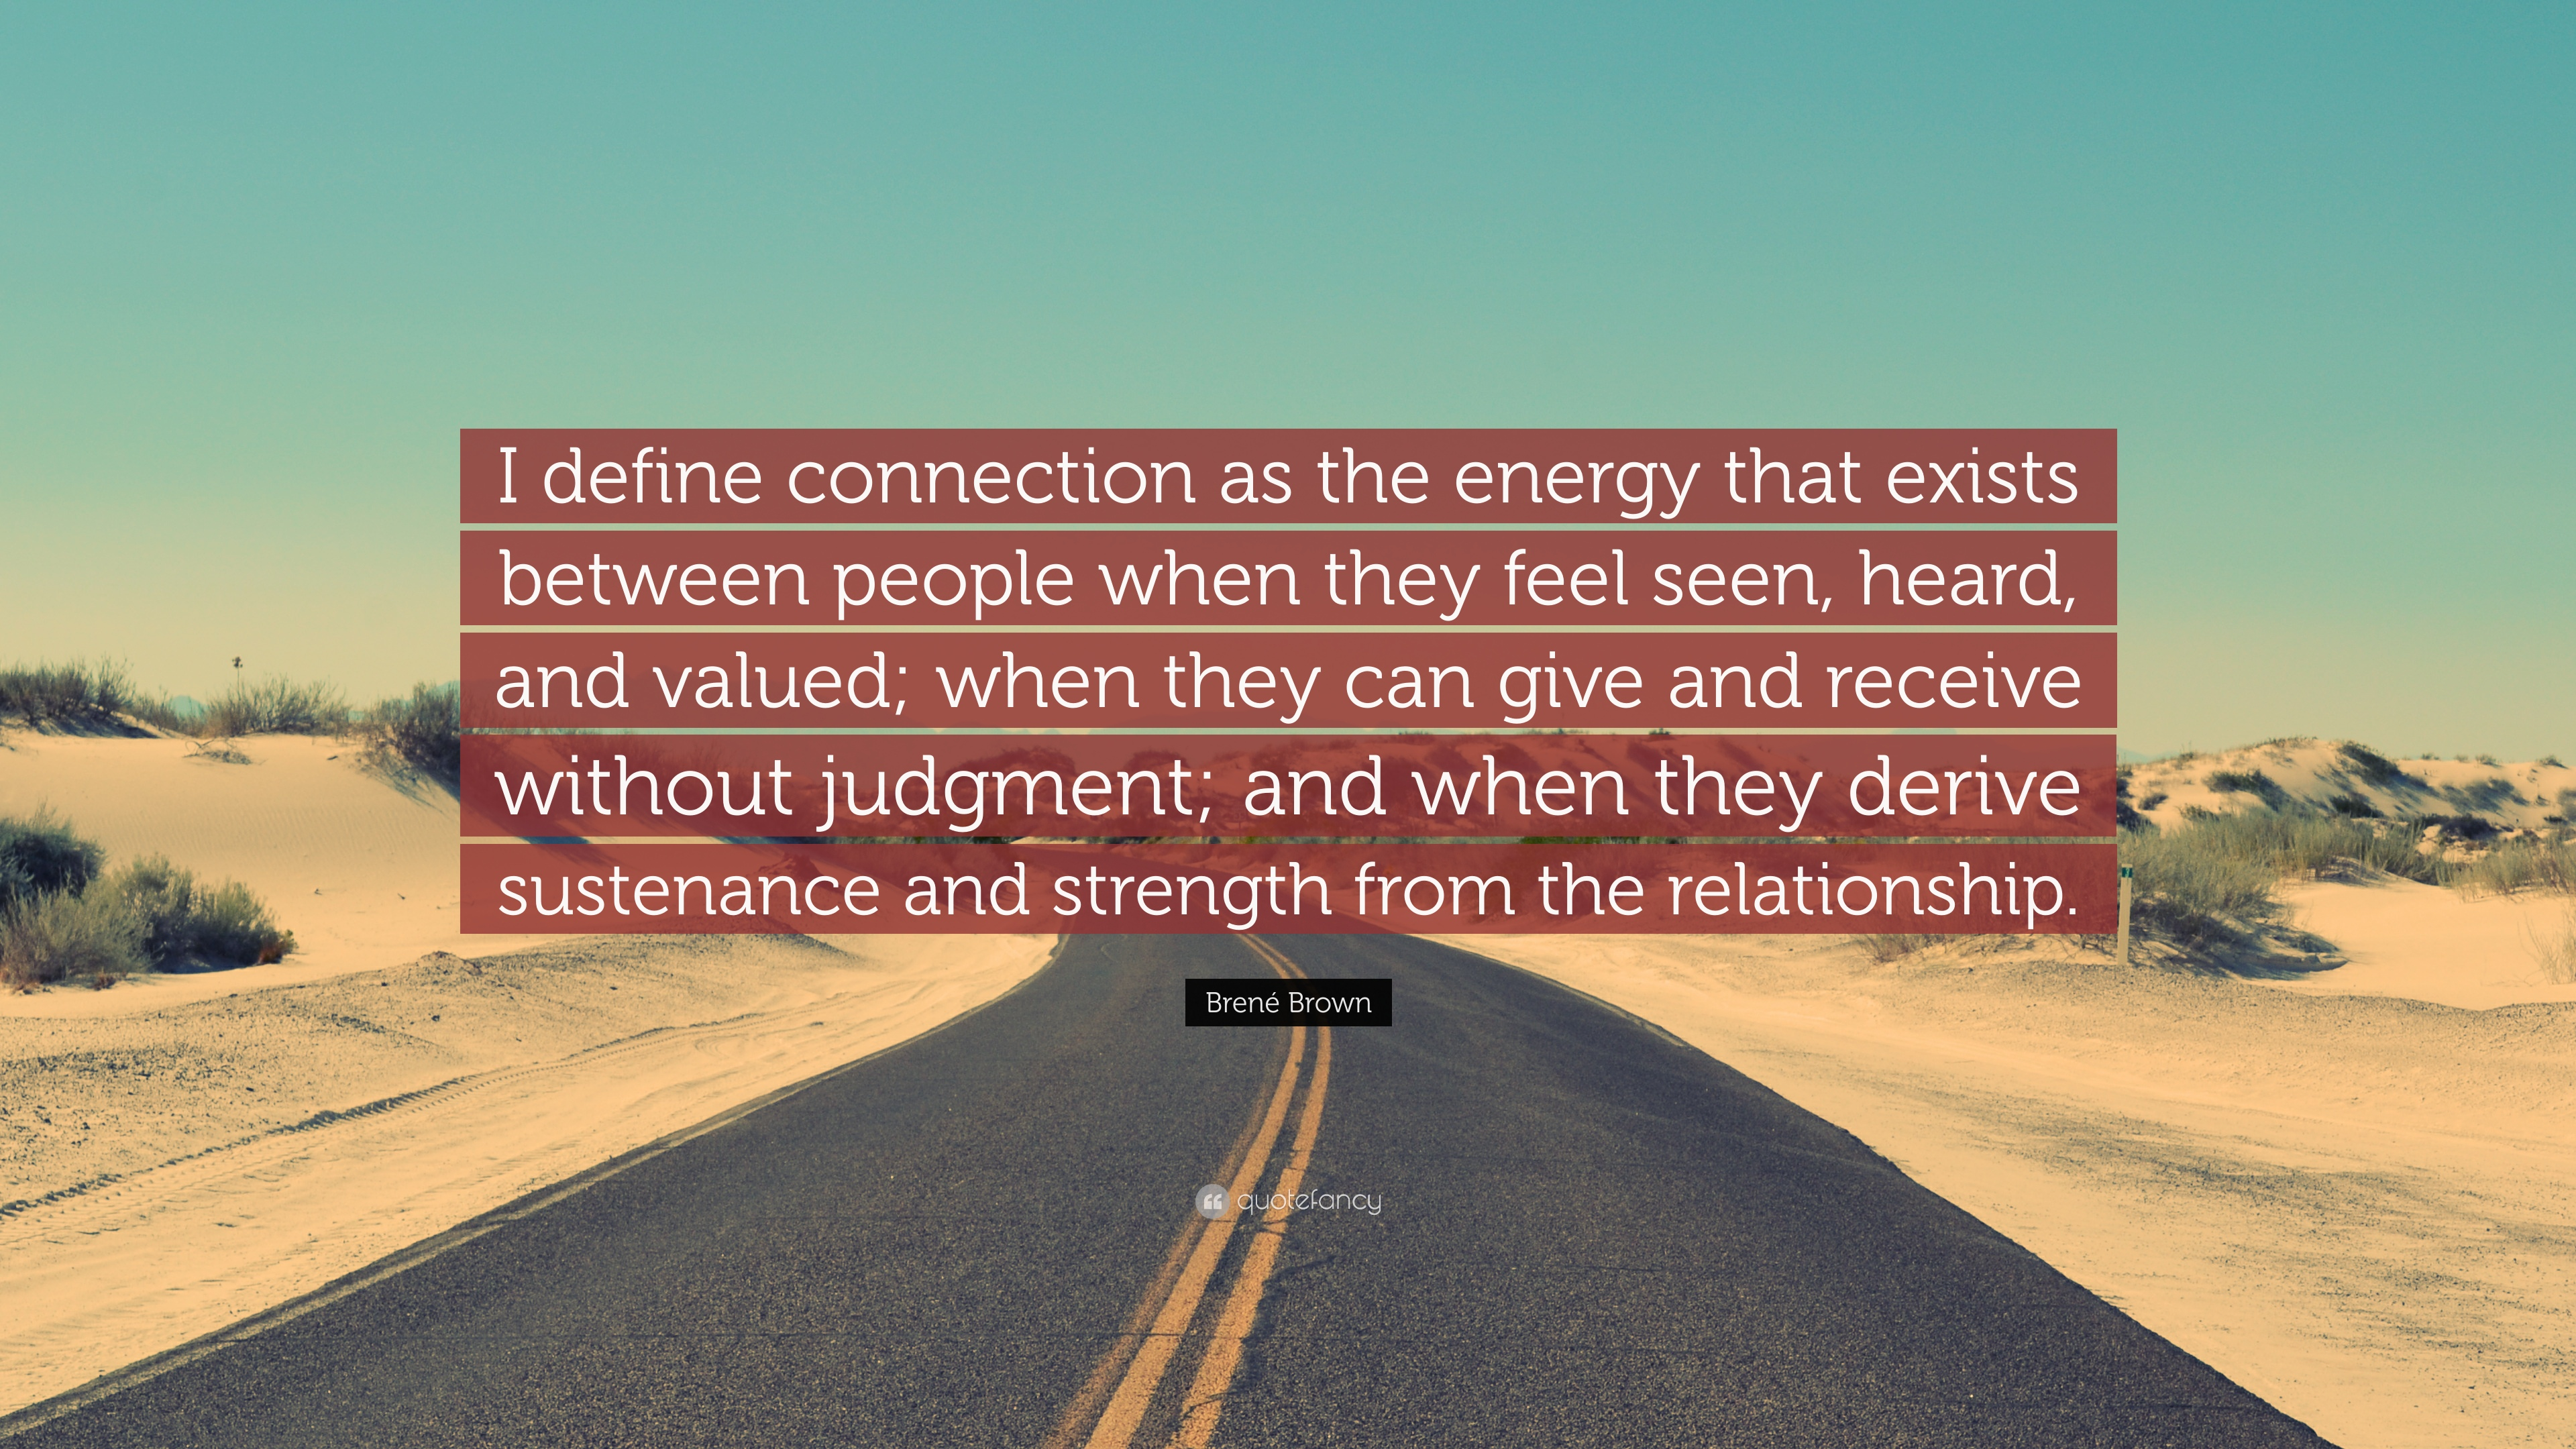 Morning Energy Quotes Facebook thumbnail